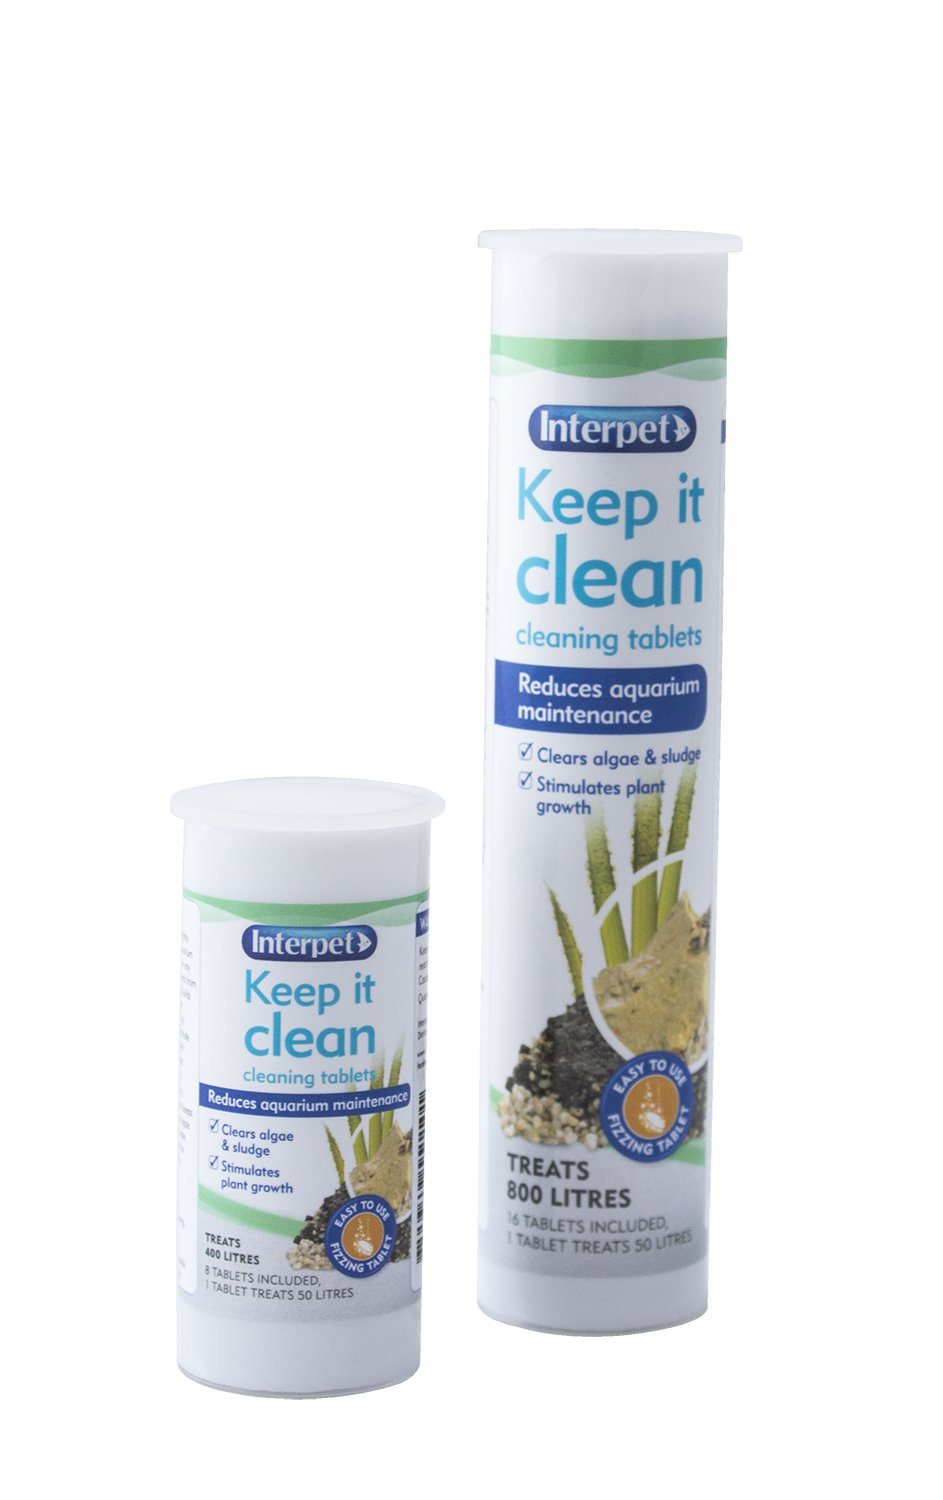 Interpet Keep It Clean Tablets, Pack of 16: Amazon.co.uk: Pet Supplies